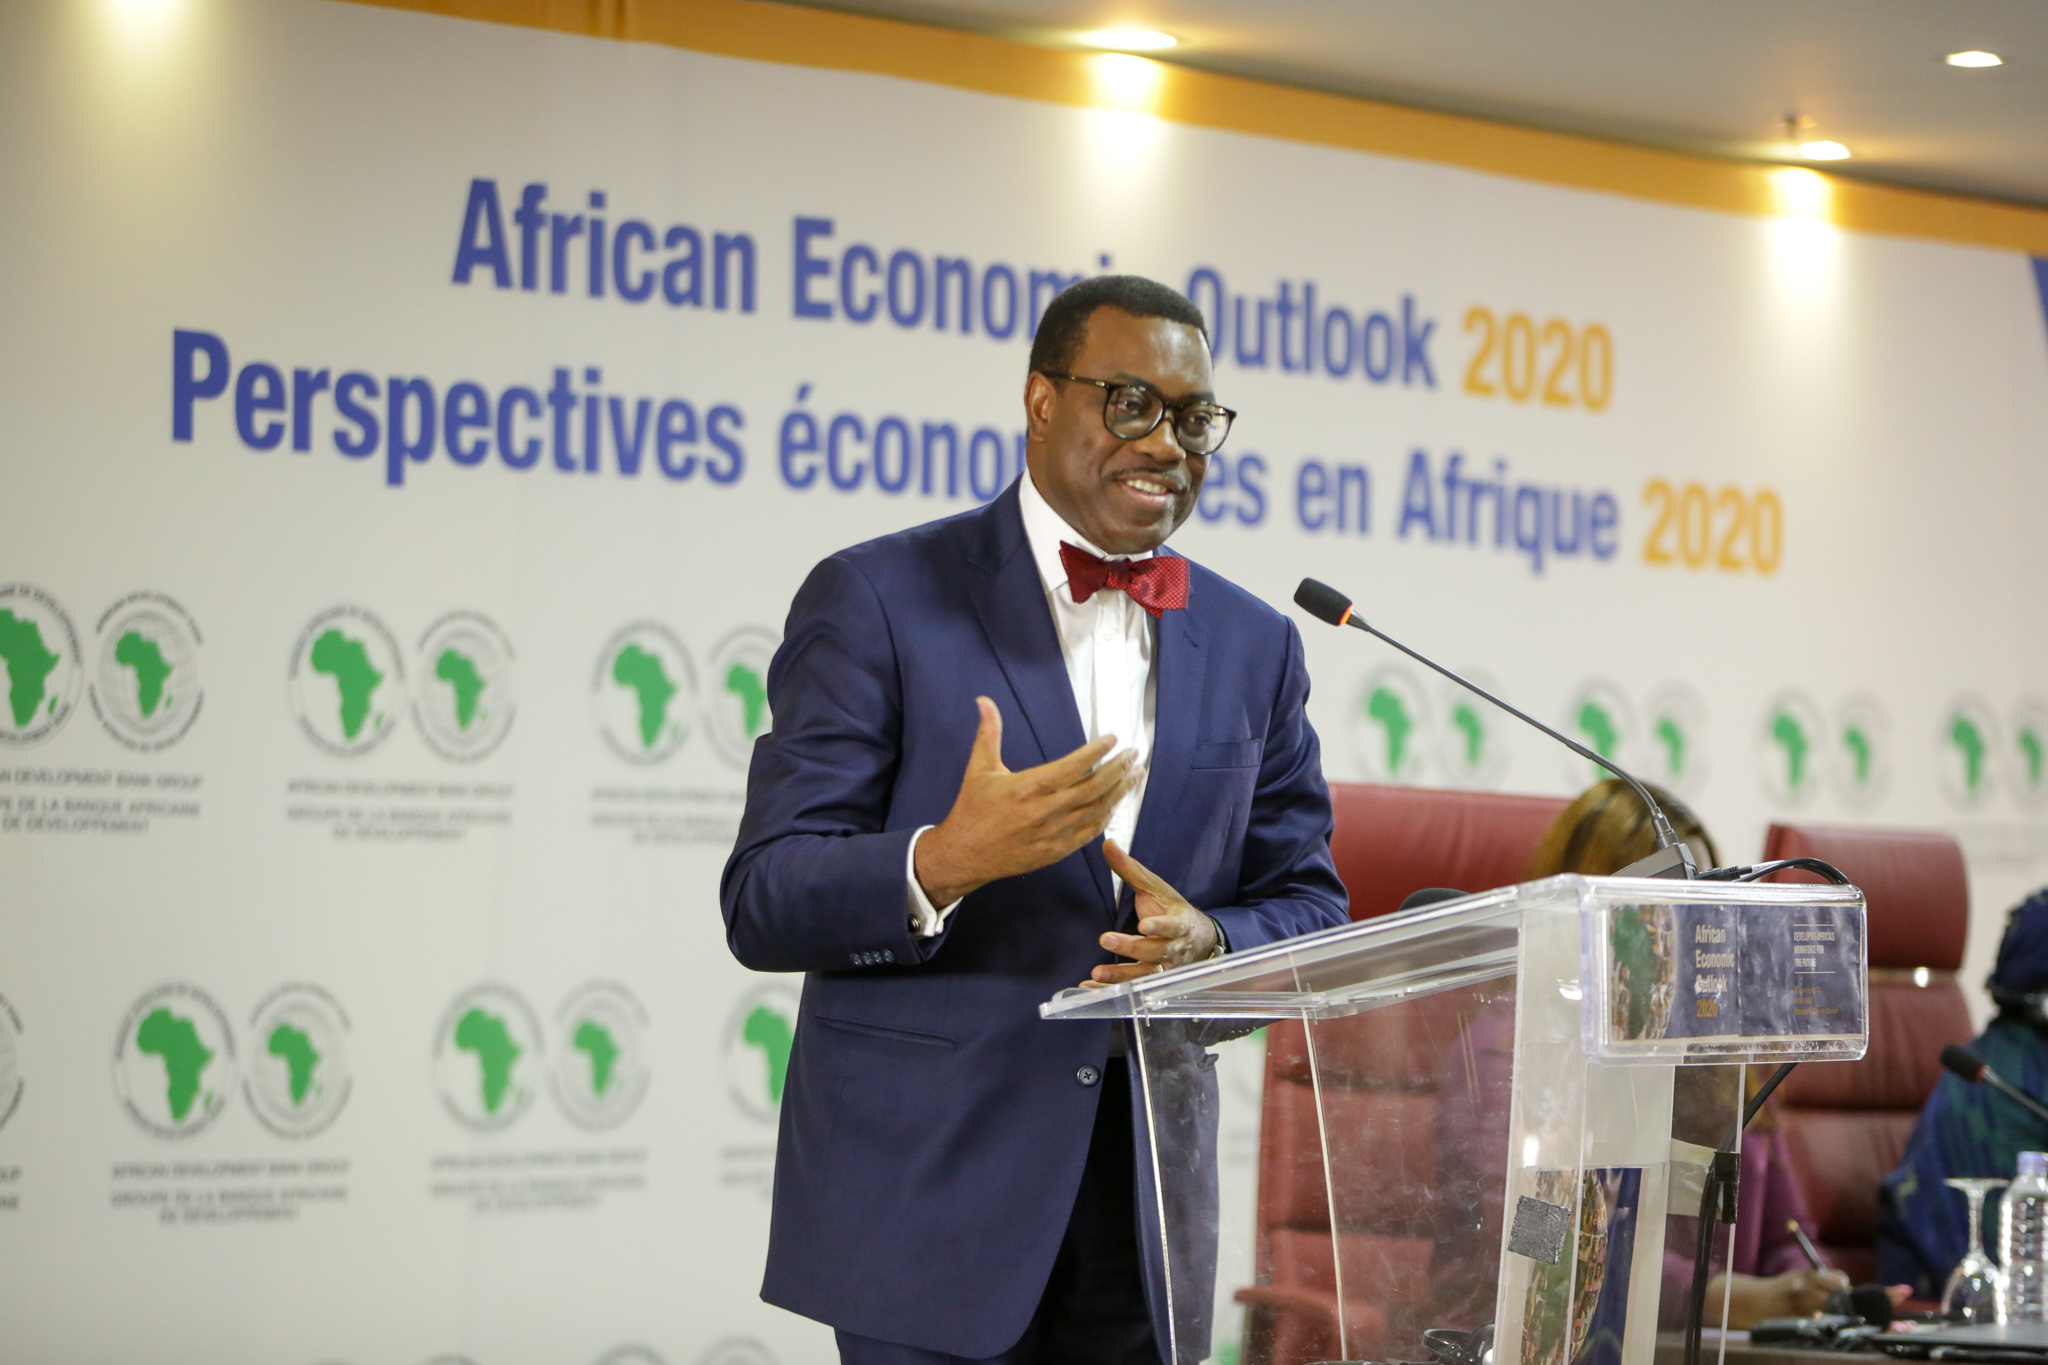 """Nobody eats GDP"" says African Development Bank President as he calls for inclusive growth"